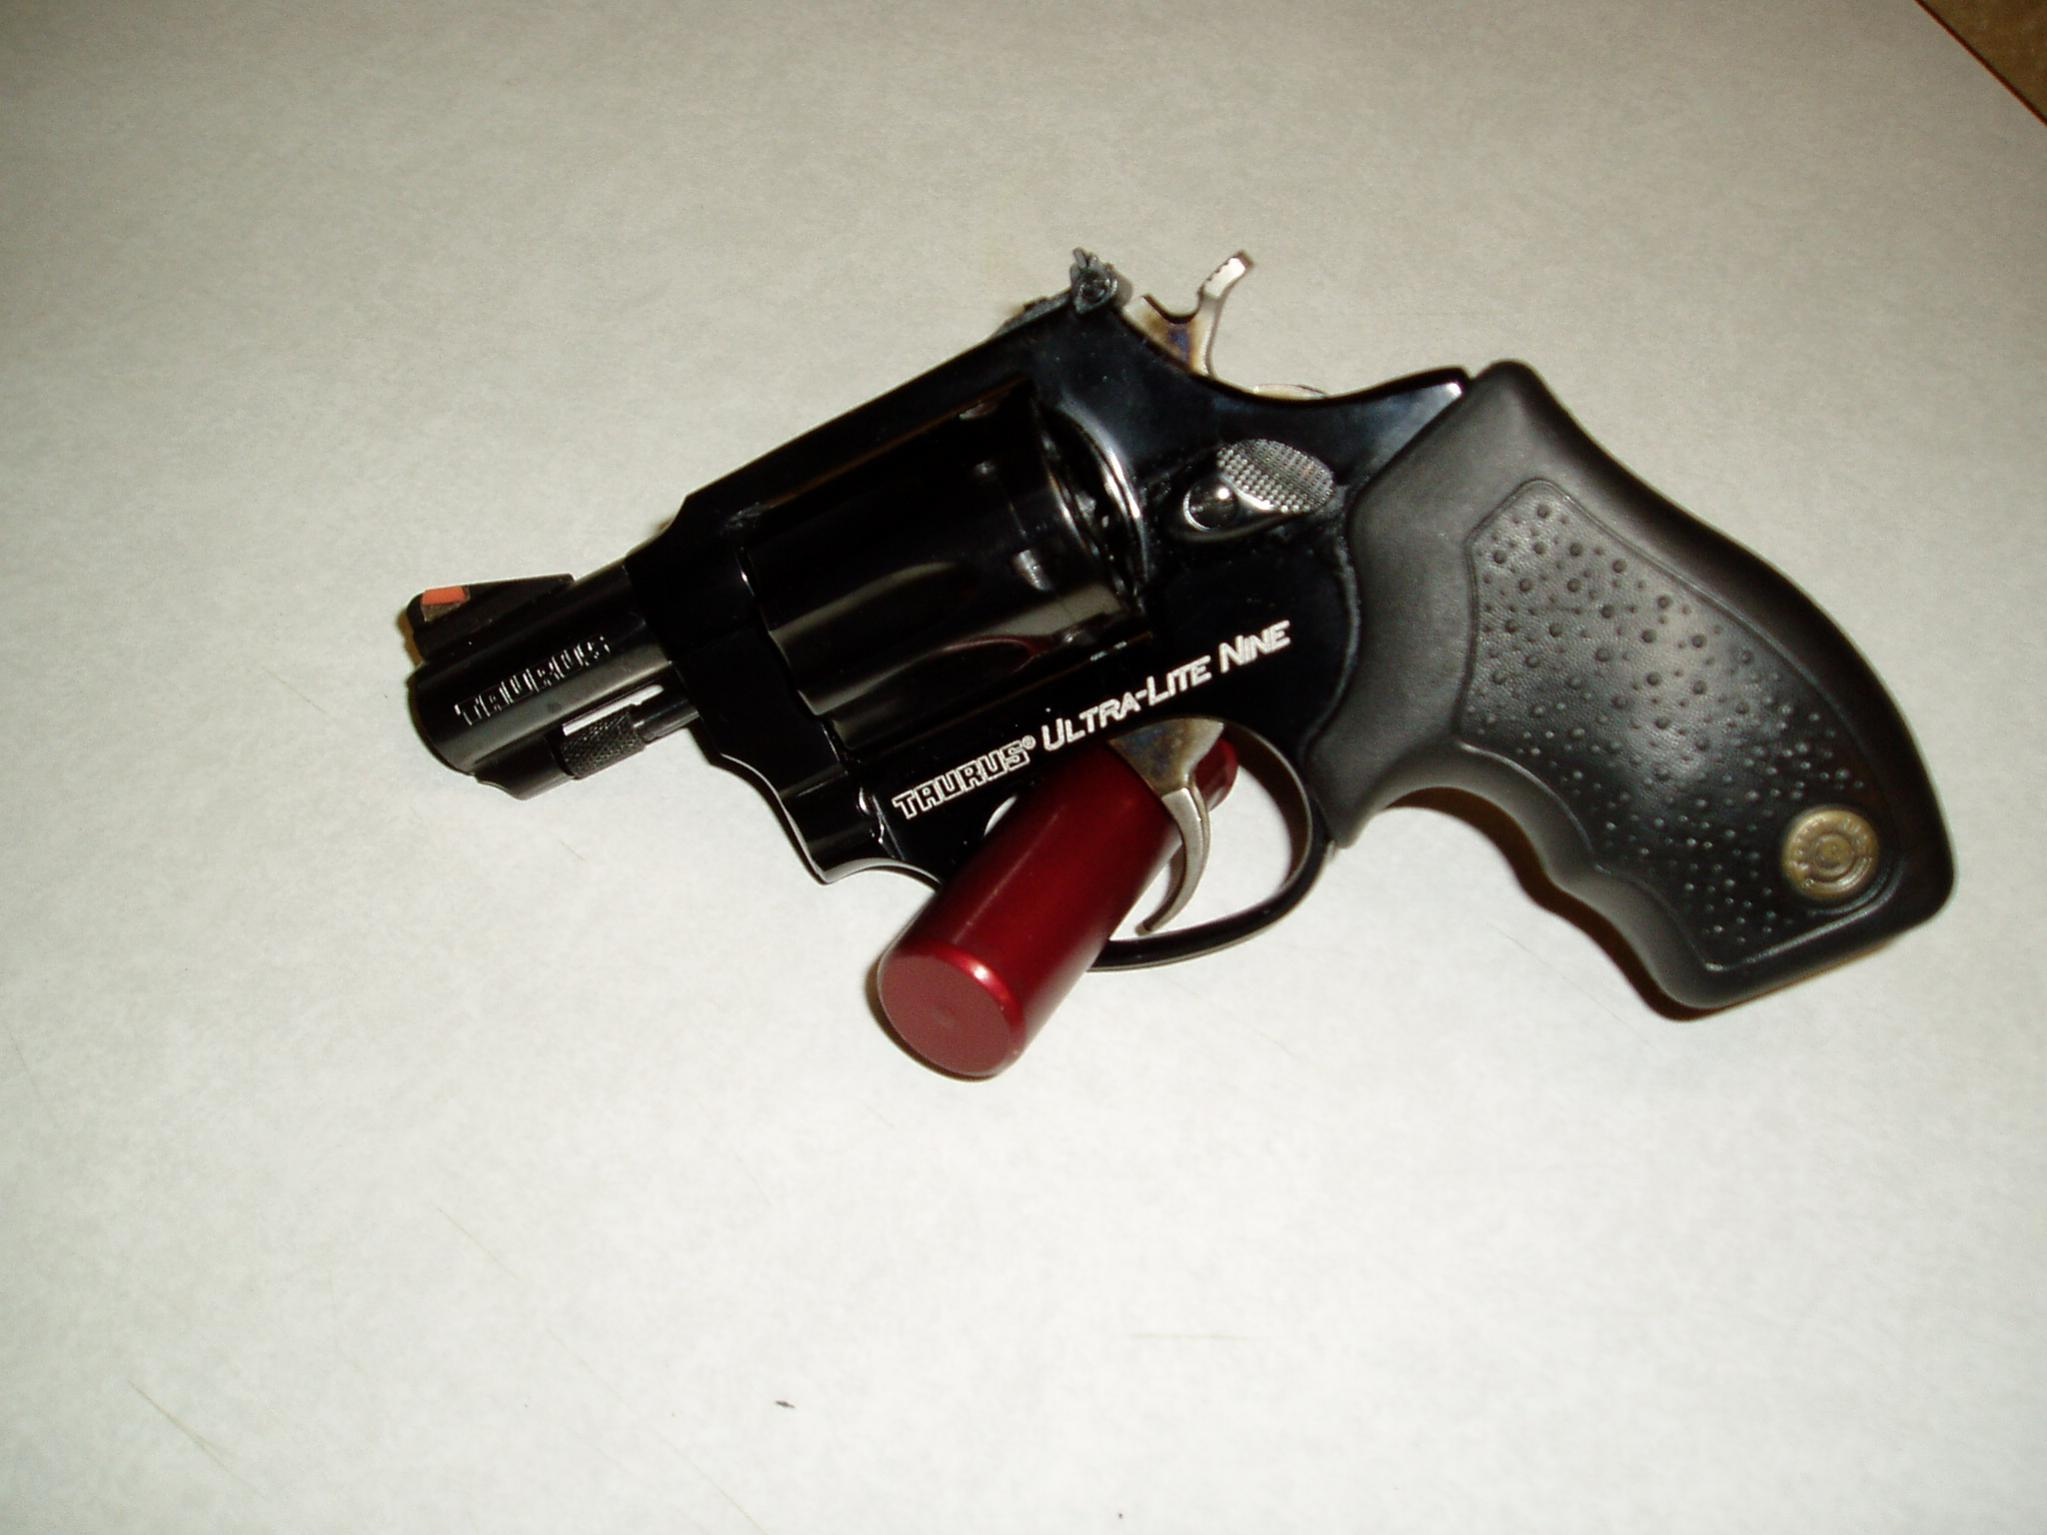 Wife Wants To Get A Hammerless Revolver For CC.....Which ones to choose?-guns-006.jpg